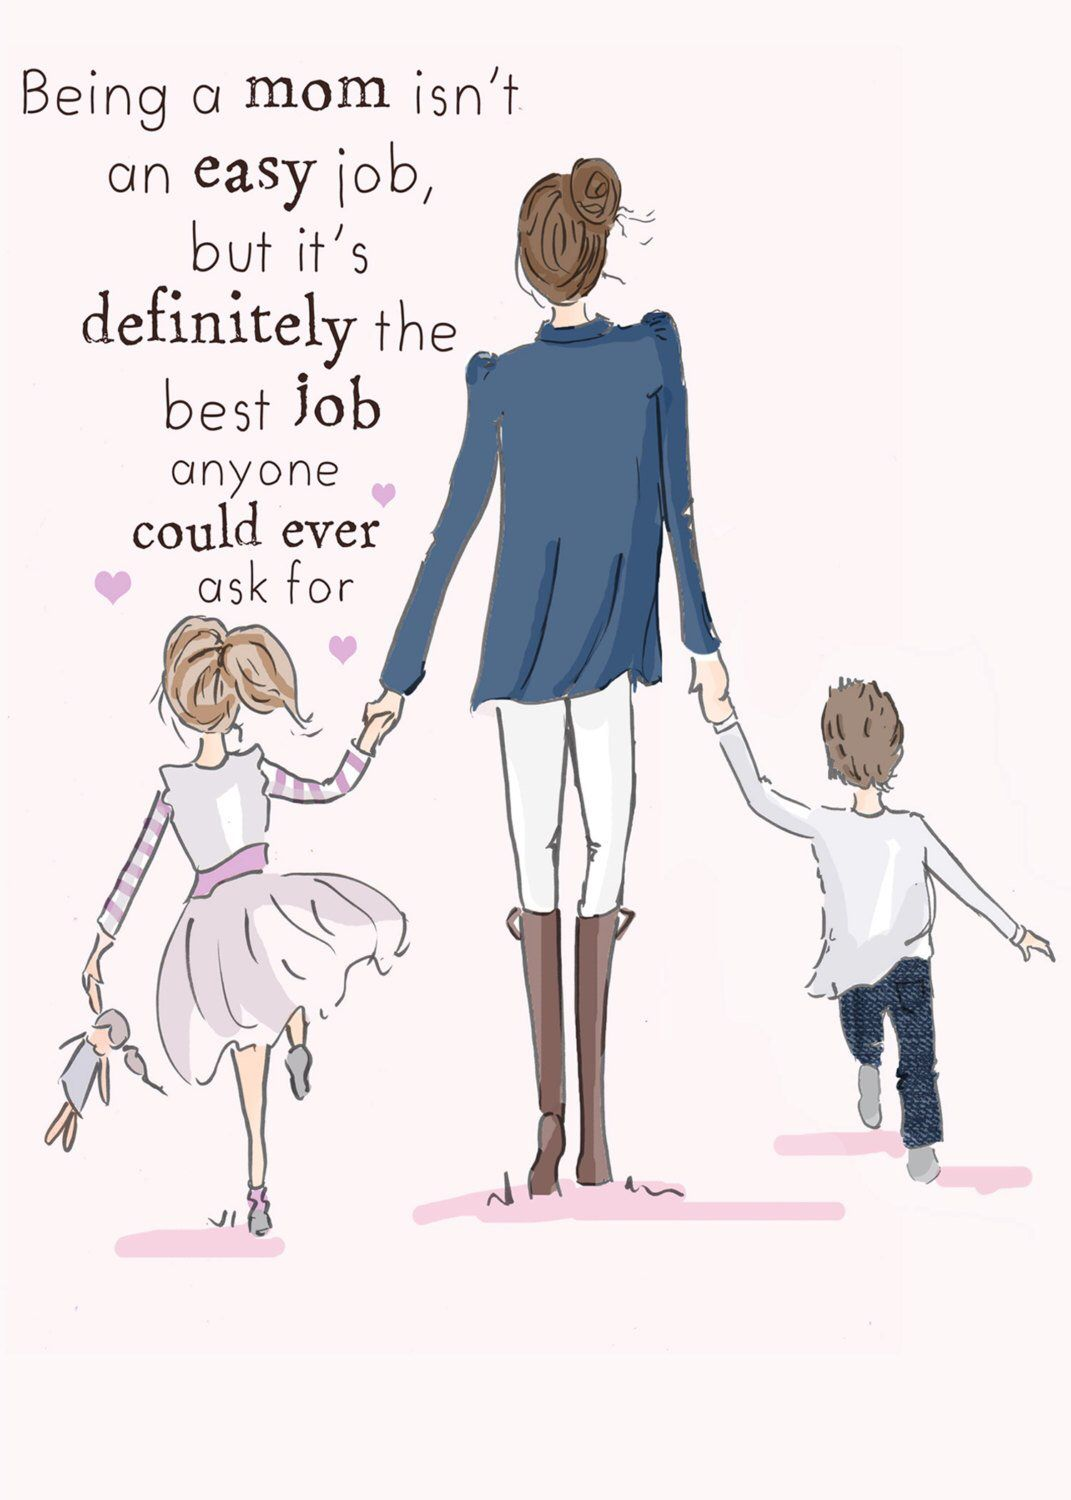 Pin by Dee Huerta on Woman quotes   Mother daughter art, Mom